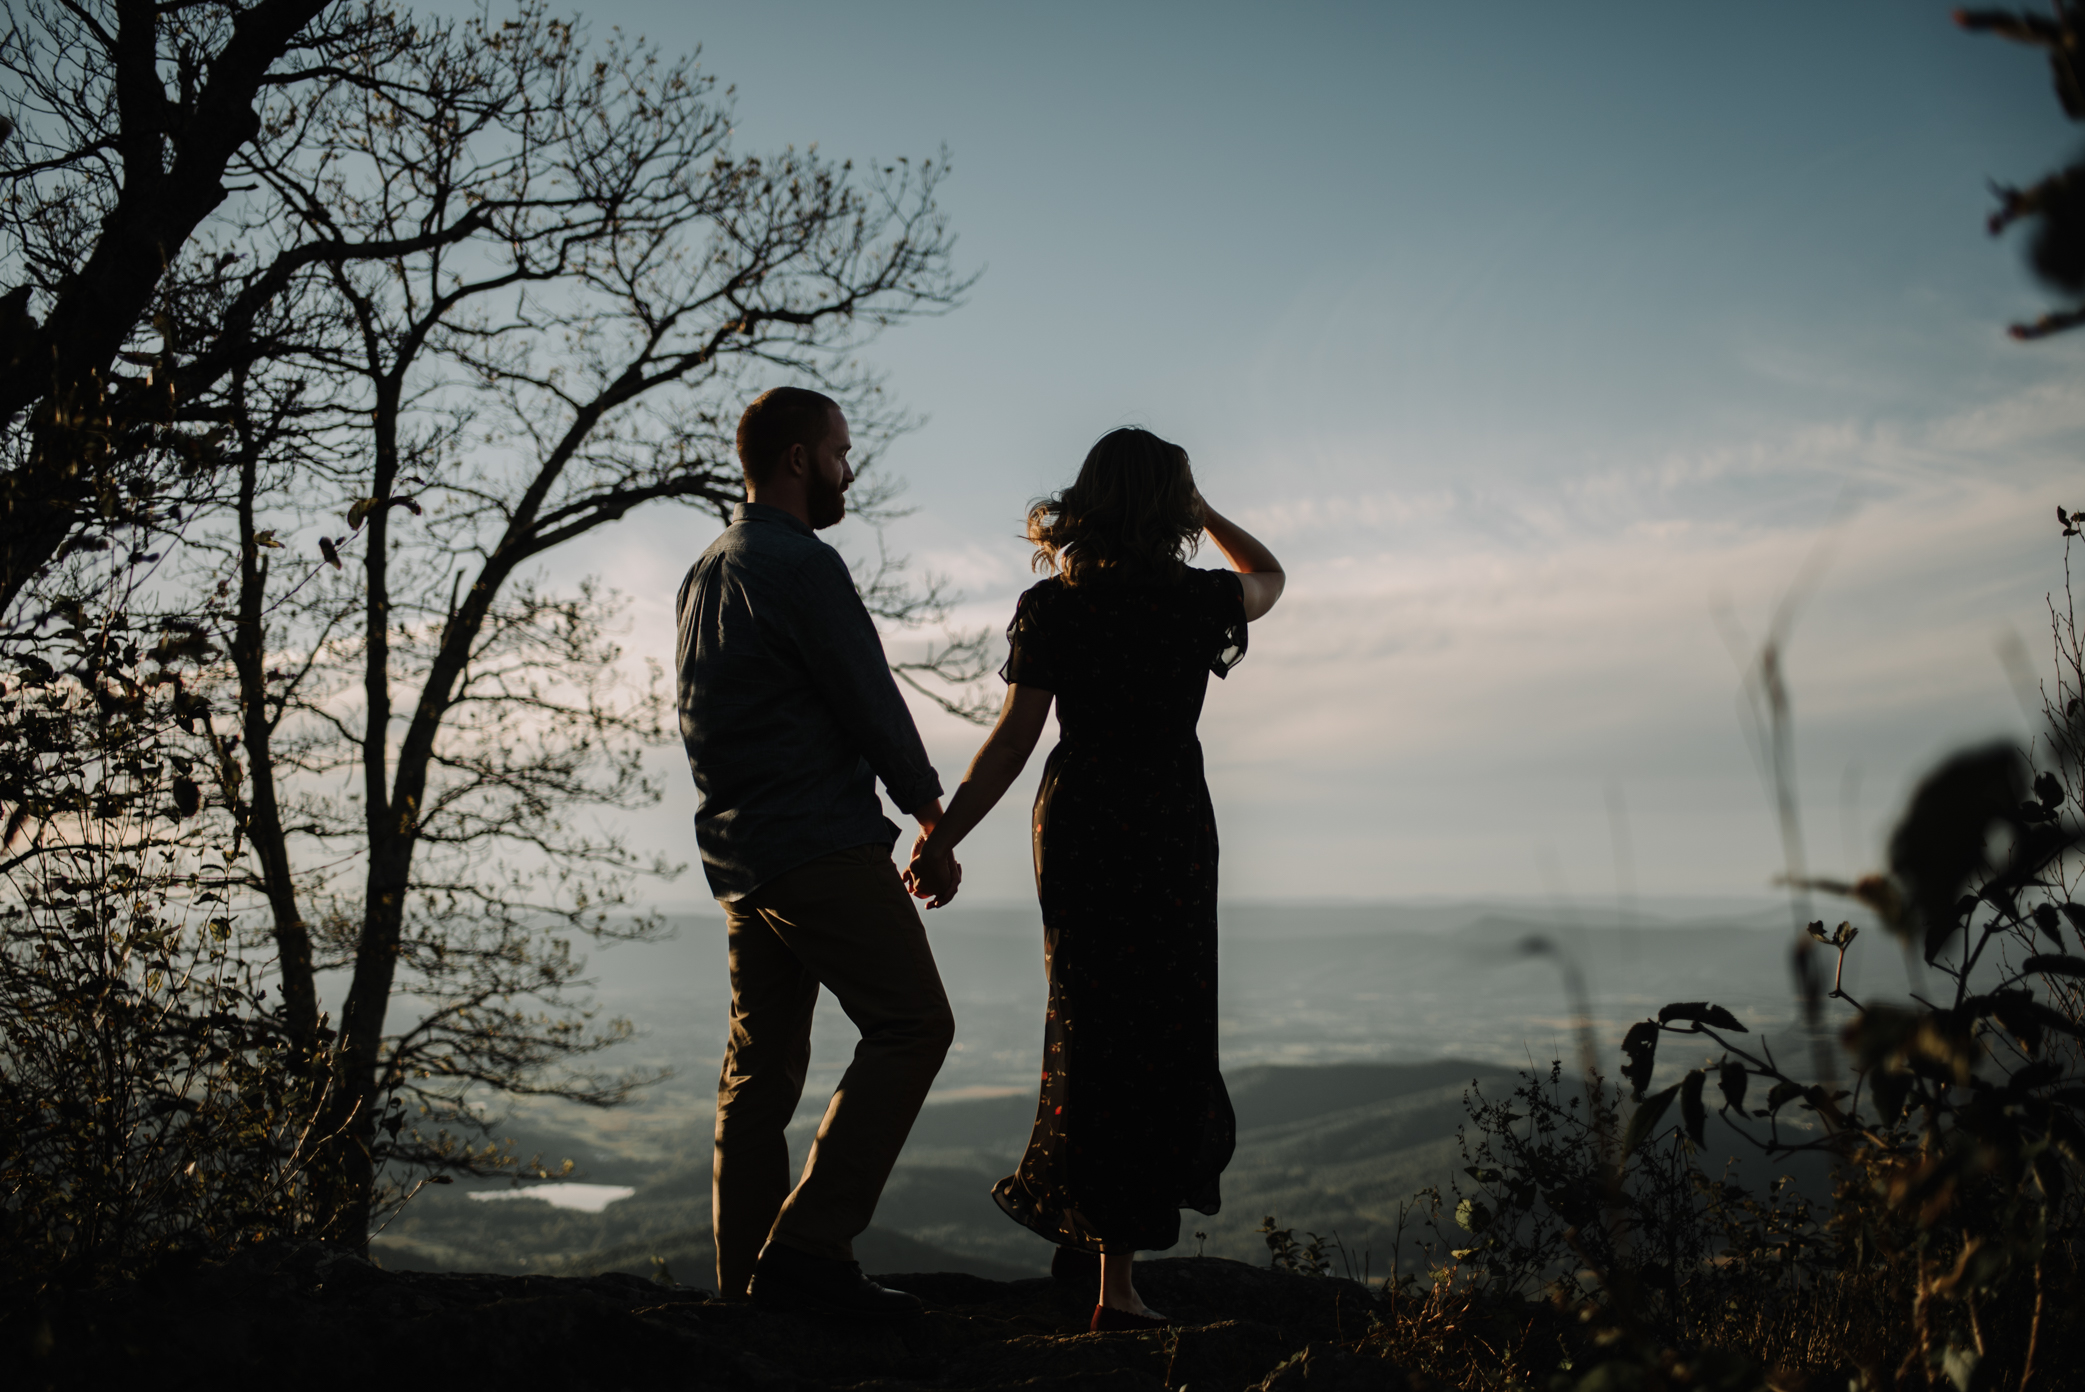 Molly and Zach Engagement Session - Fall Autumn Sunset Couple Adventure Session - Shenandoah National Park - Blue Ridge Parkway Skyline Drive - White Sails Creative_16.JPG